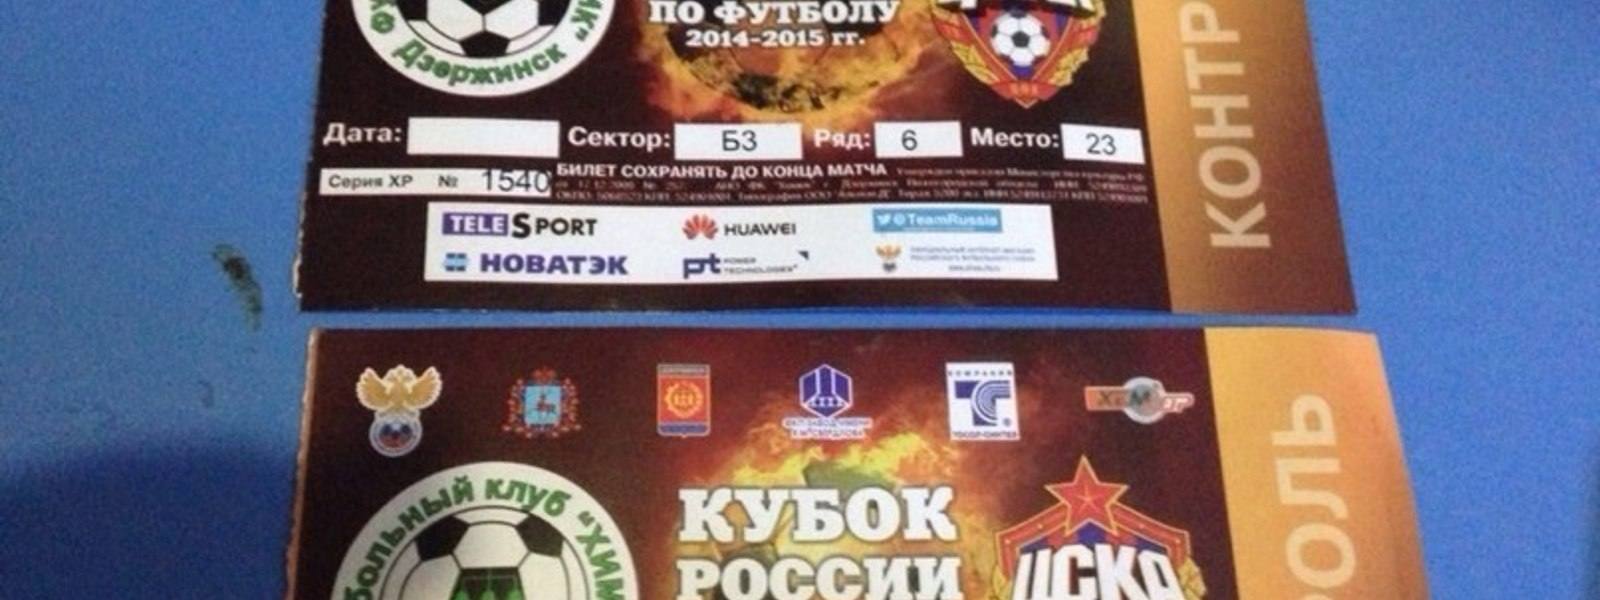 Very big ticket khimik cska